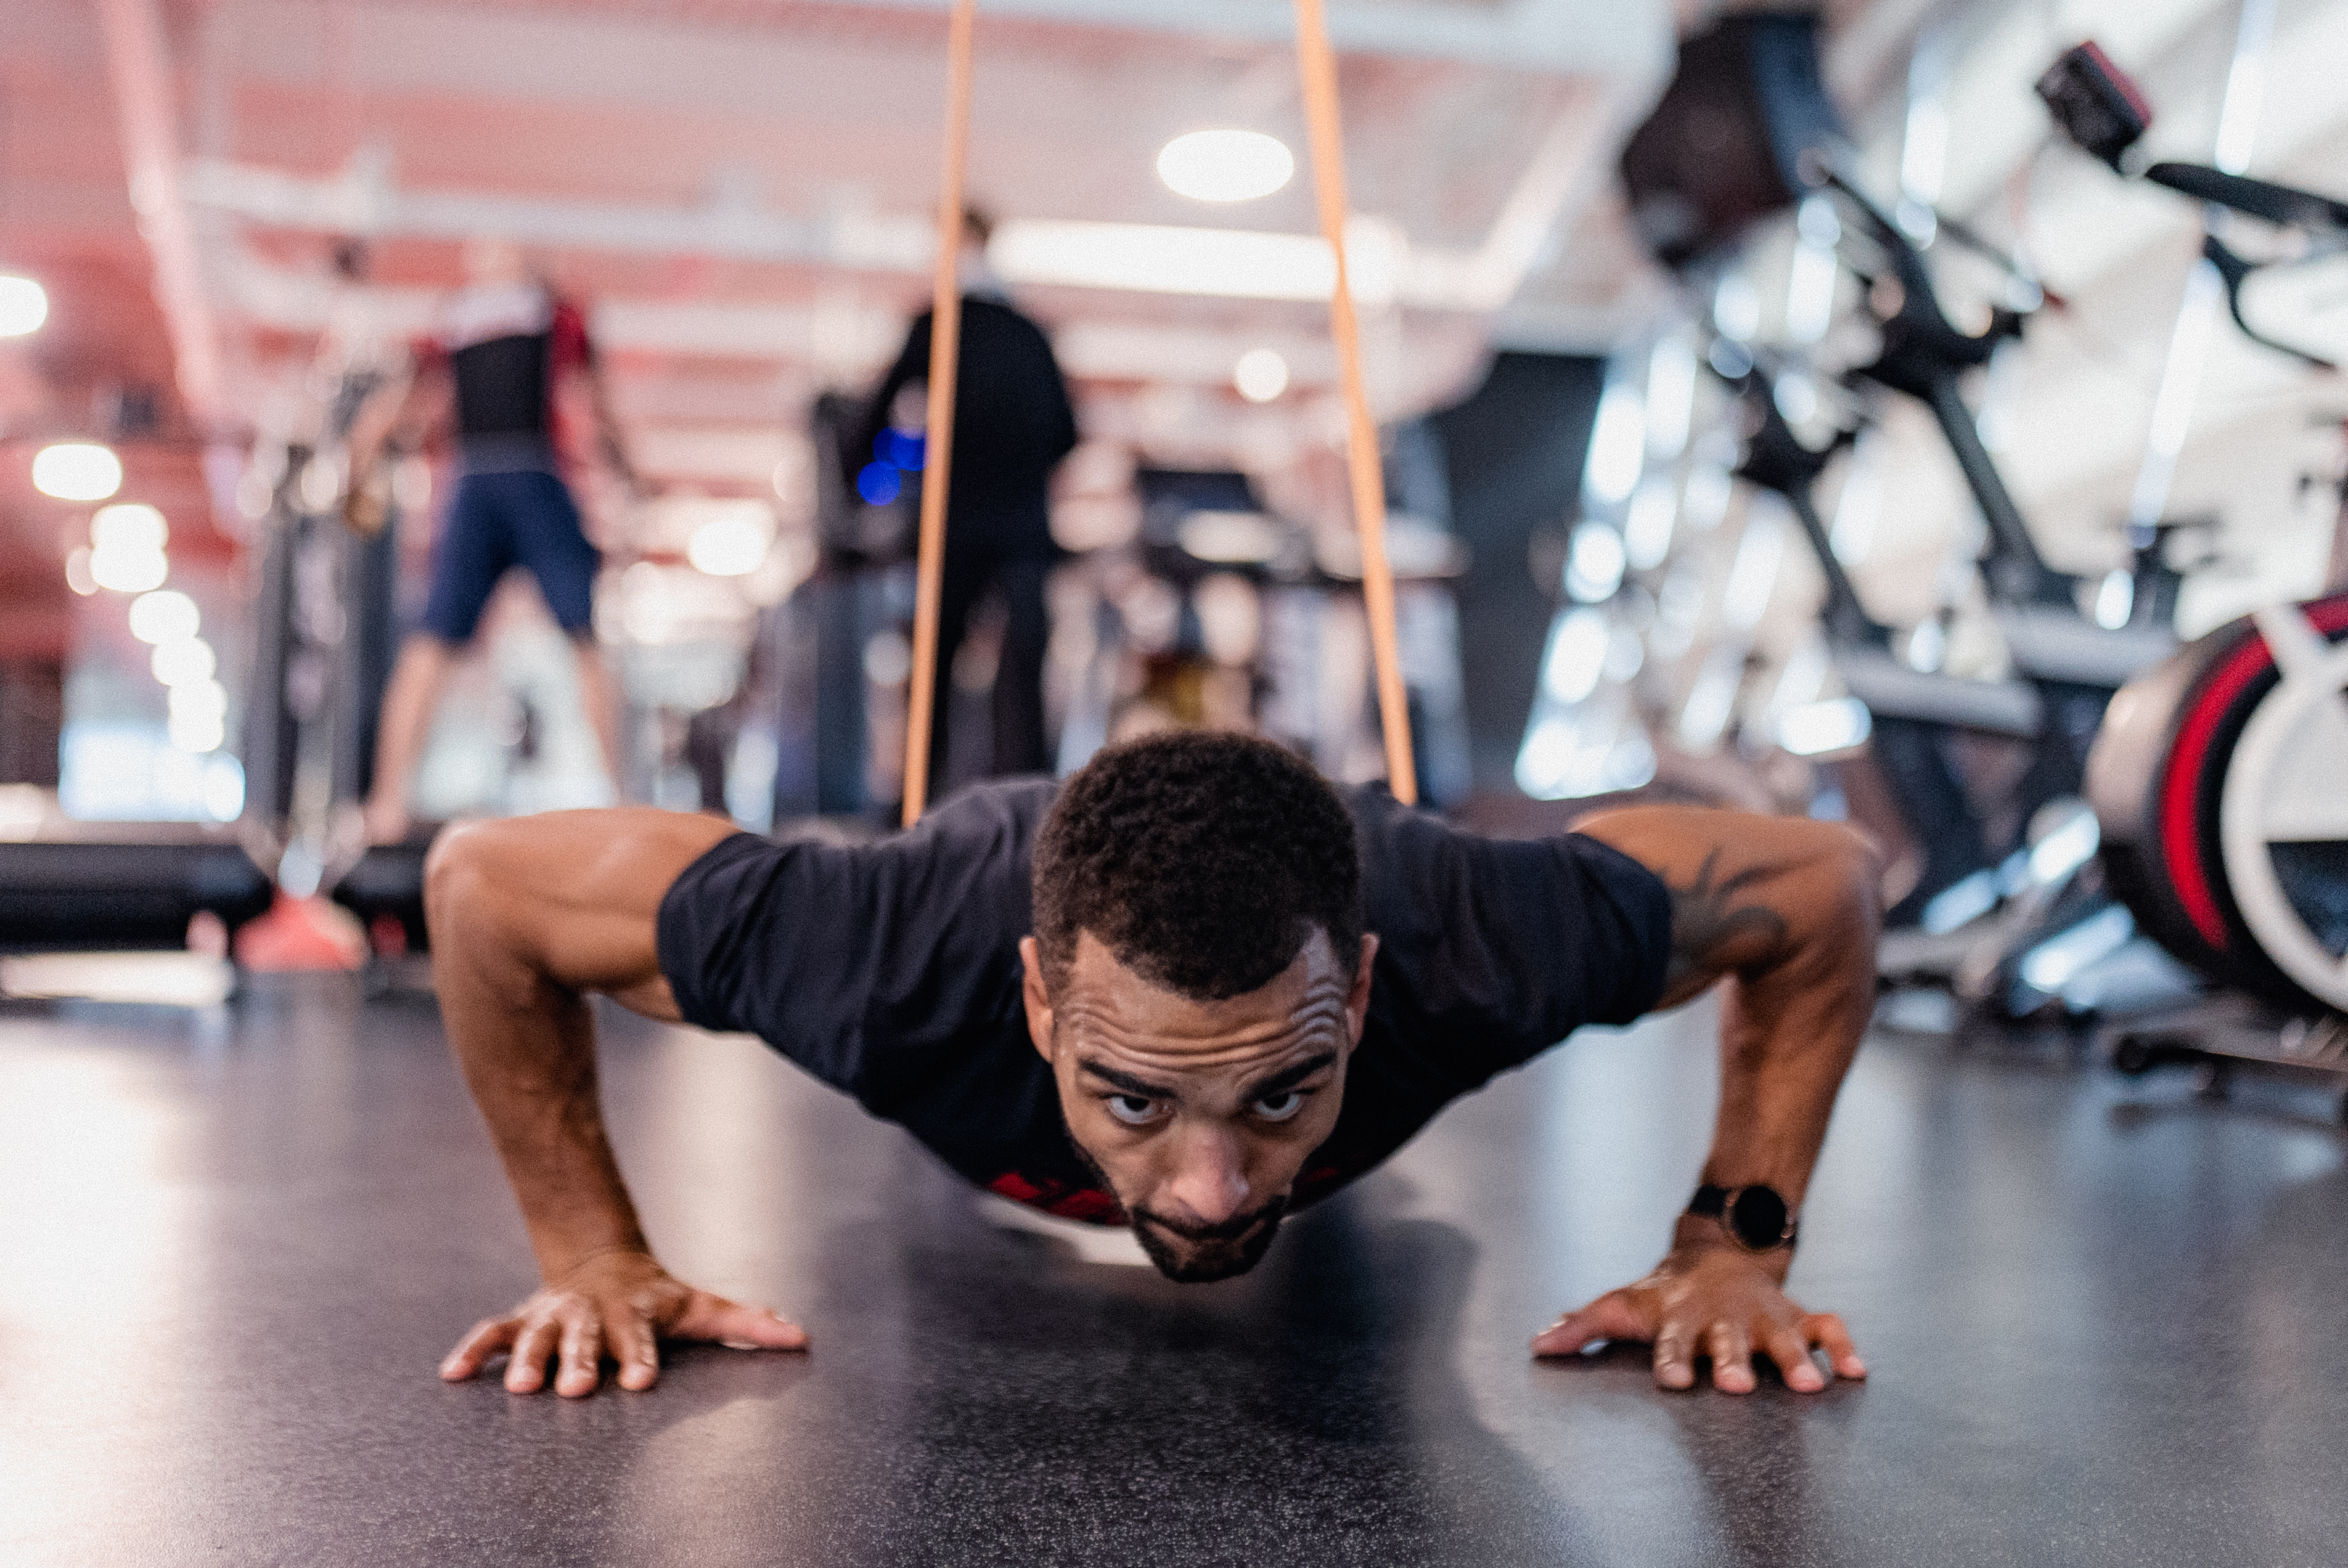 Danny Roberts trains at the UFC Performance Institute on October 13, 2021. (Photo by Zac Pacleb)